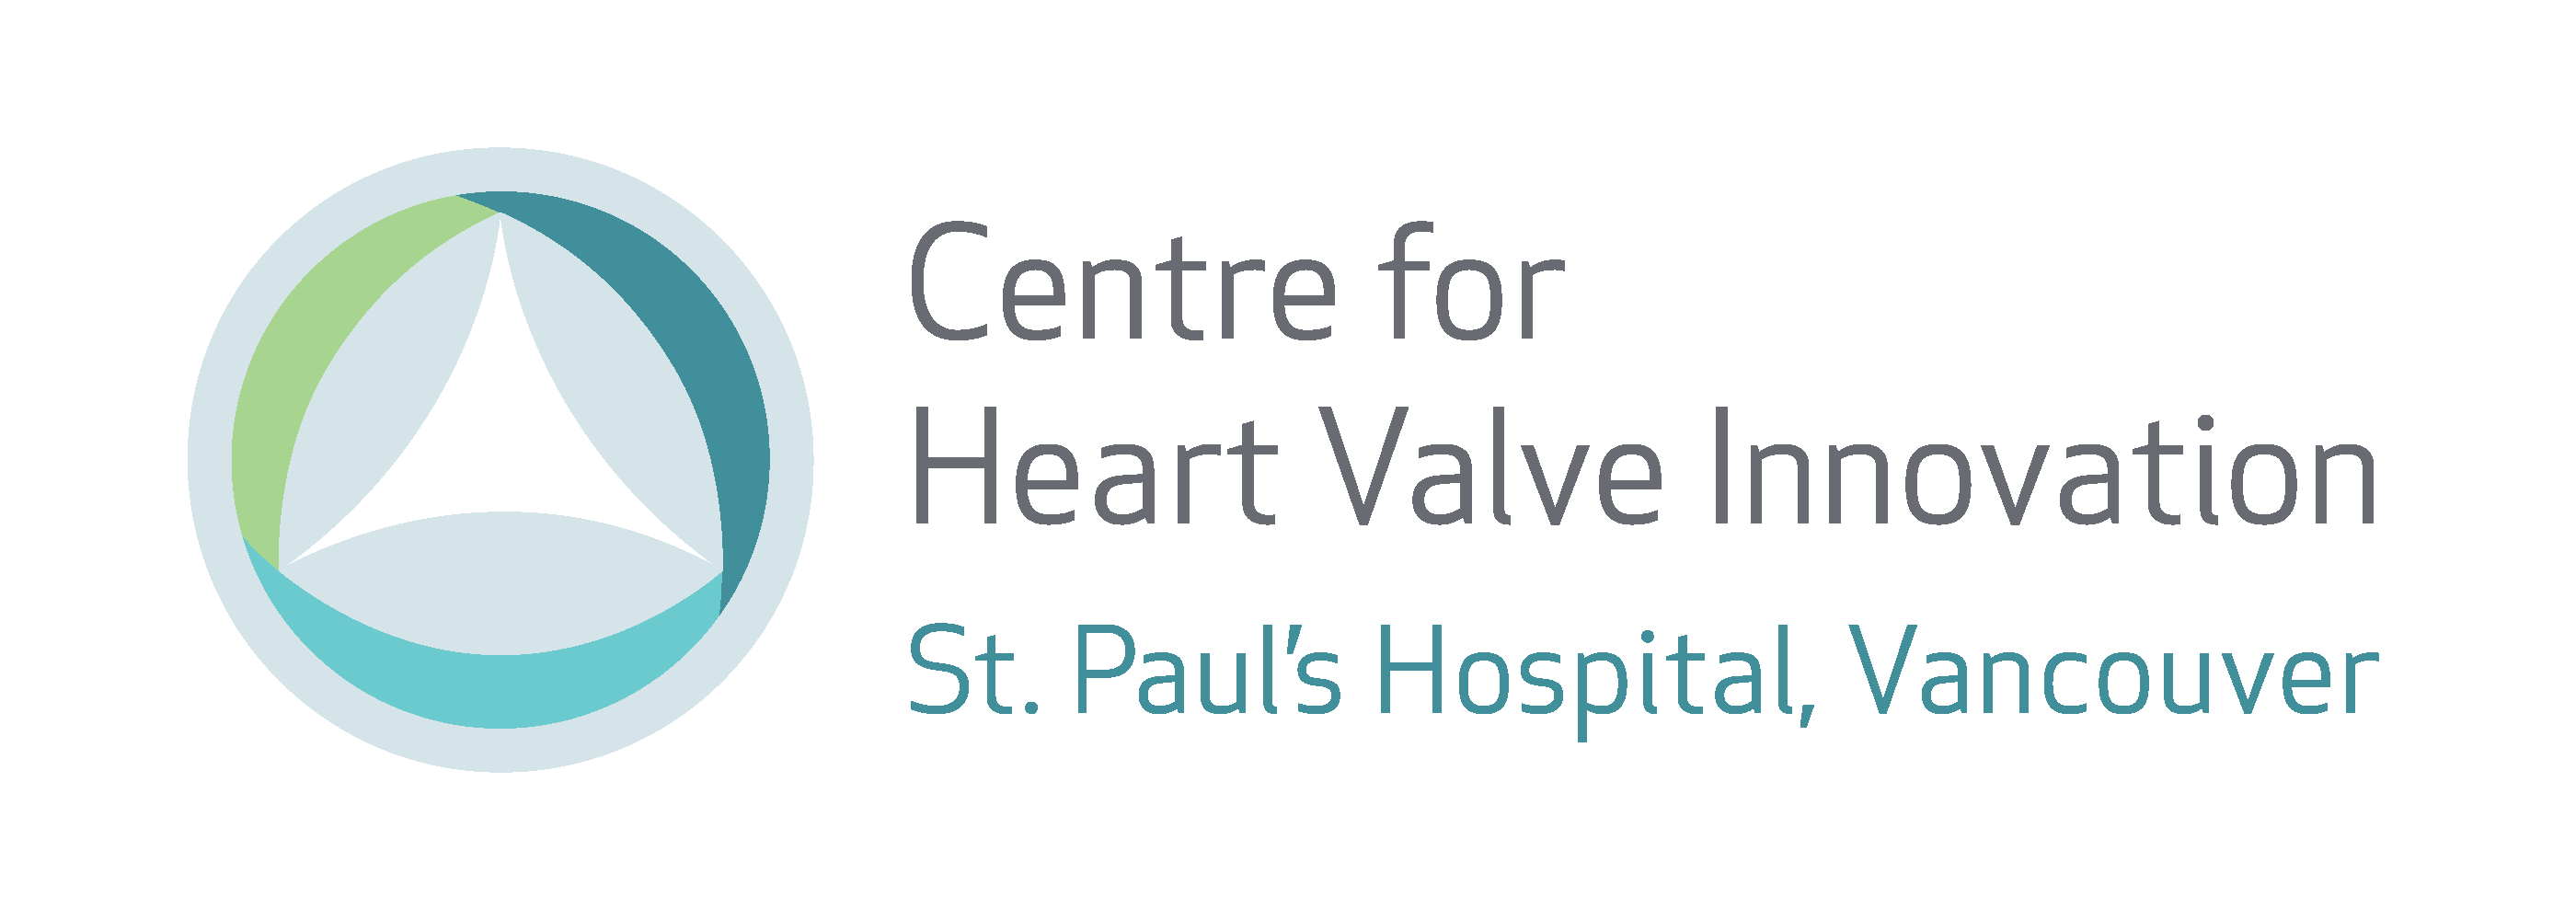 Centre for Heart Valve Innovation